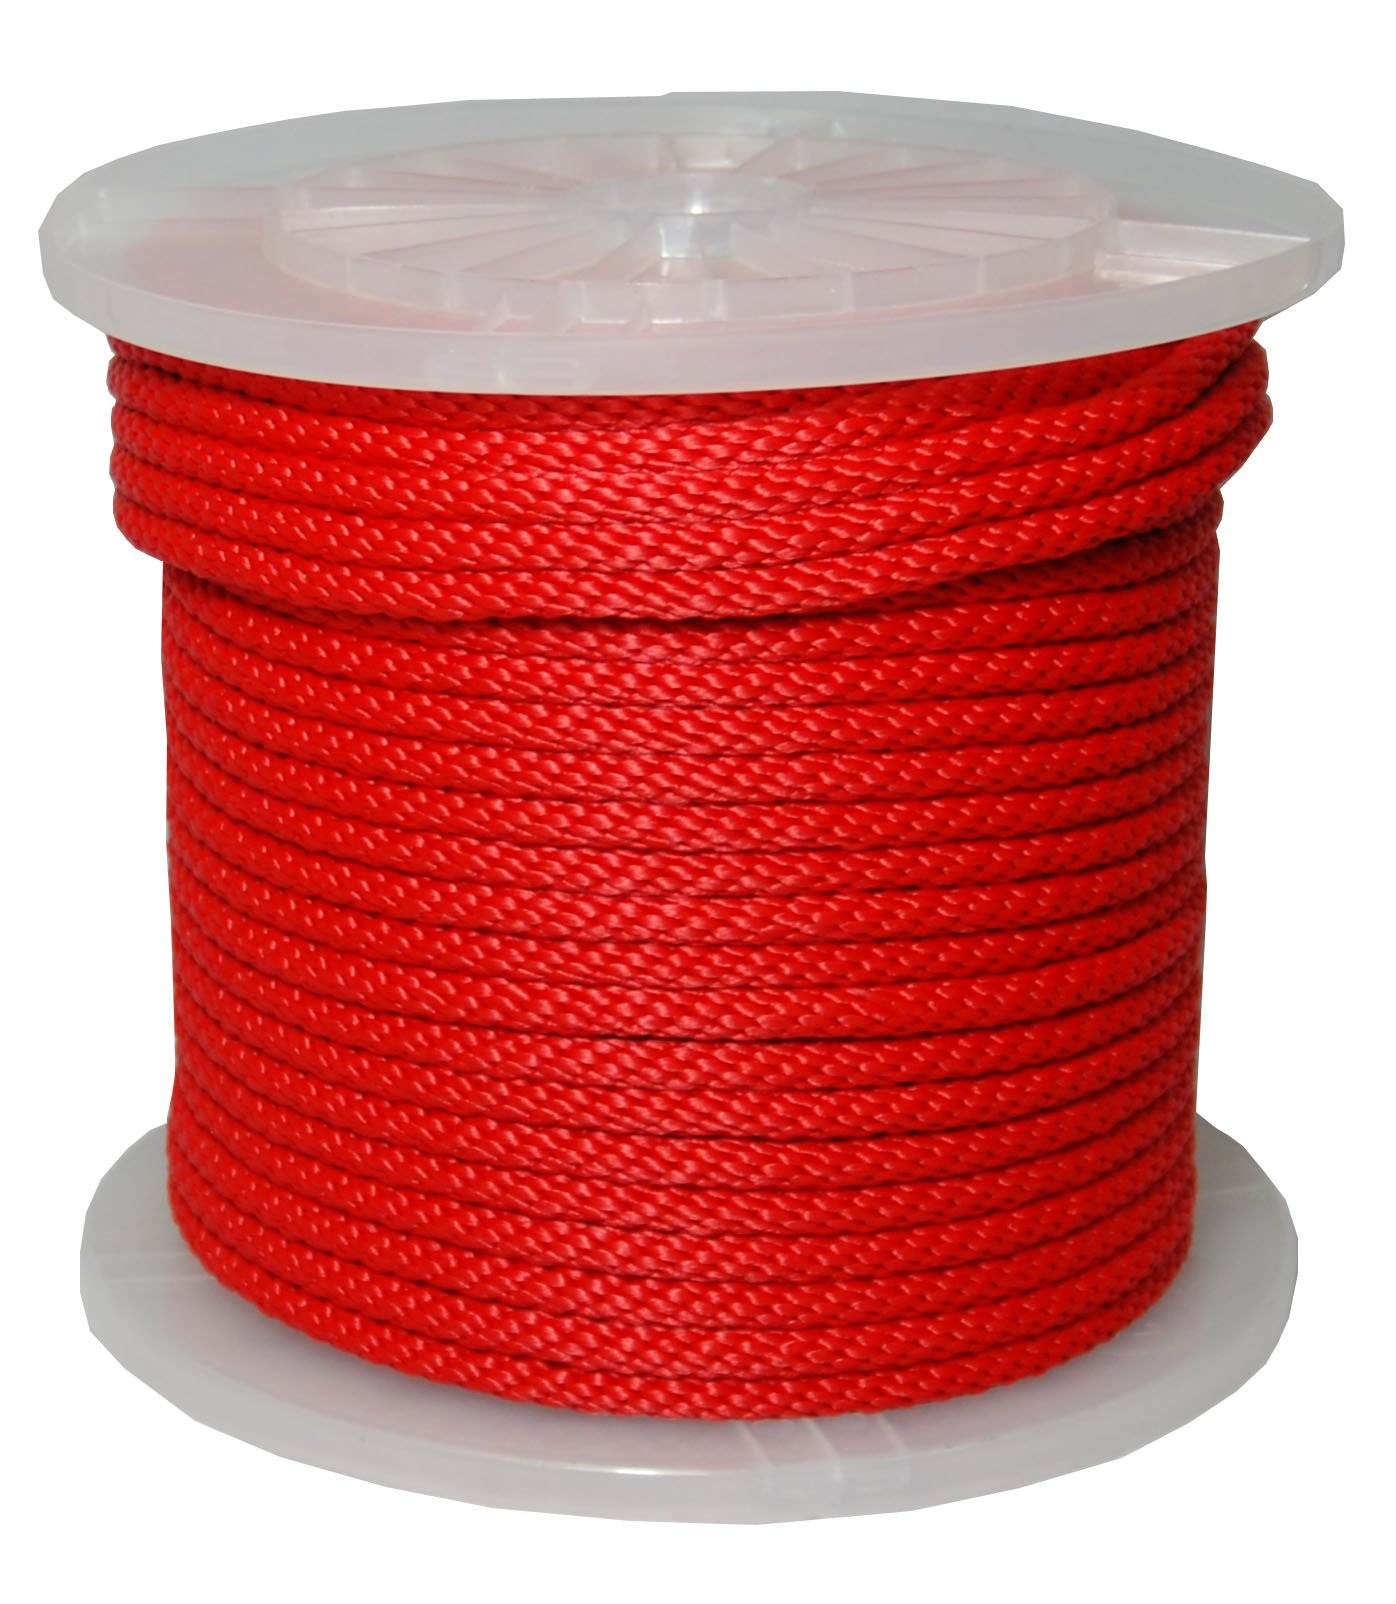 T.W Evans Cordage 98333 3/8-Inch by 300-Feet Solid Braid Propylene Multifilament Derby Rope, Red by T.W . Evans Cordage Co.